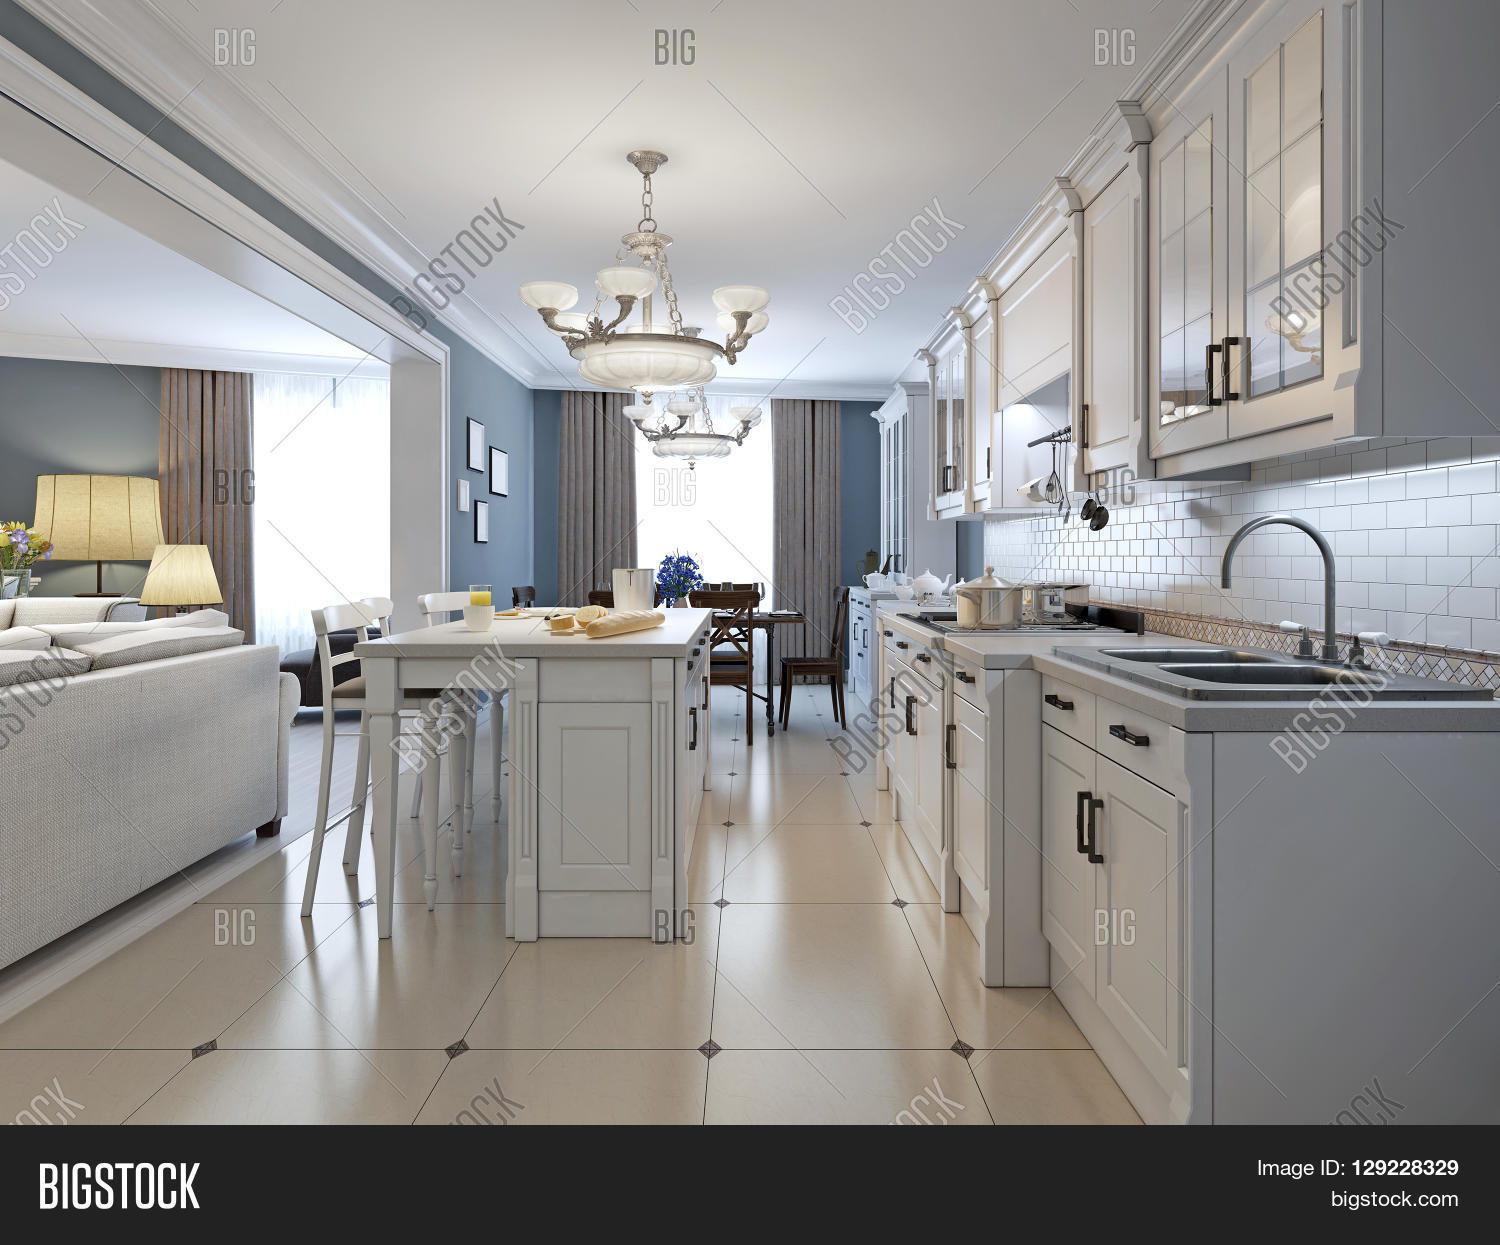 - Kitchen Stainless Image & Photo (Free Trial) Bigstock